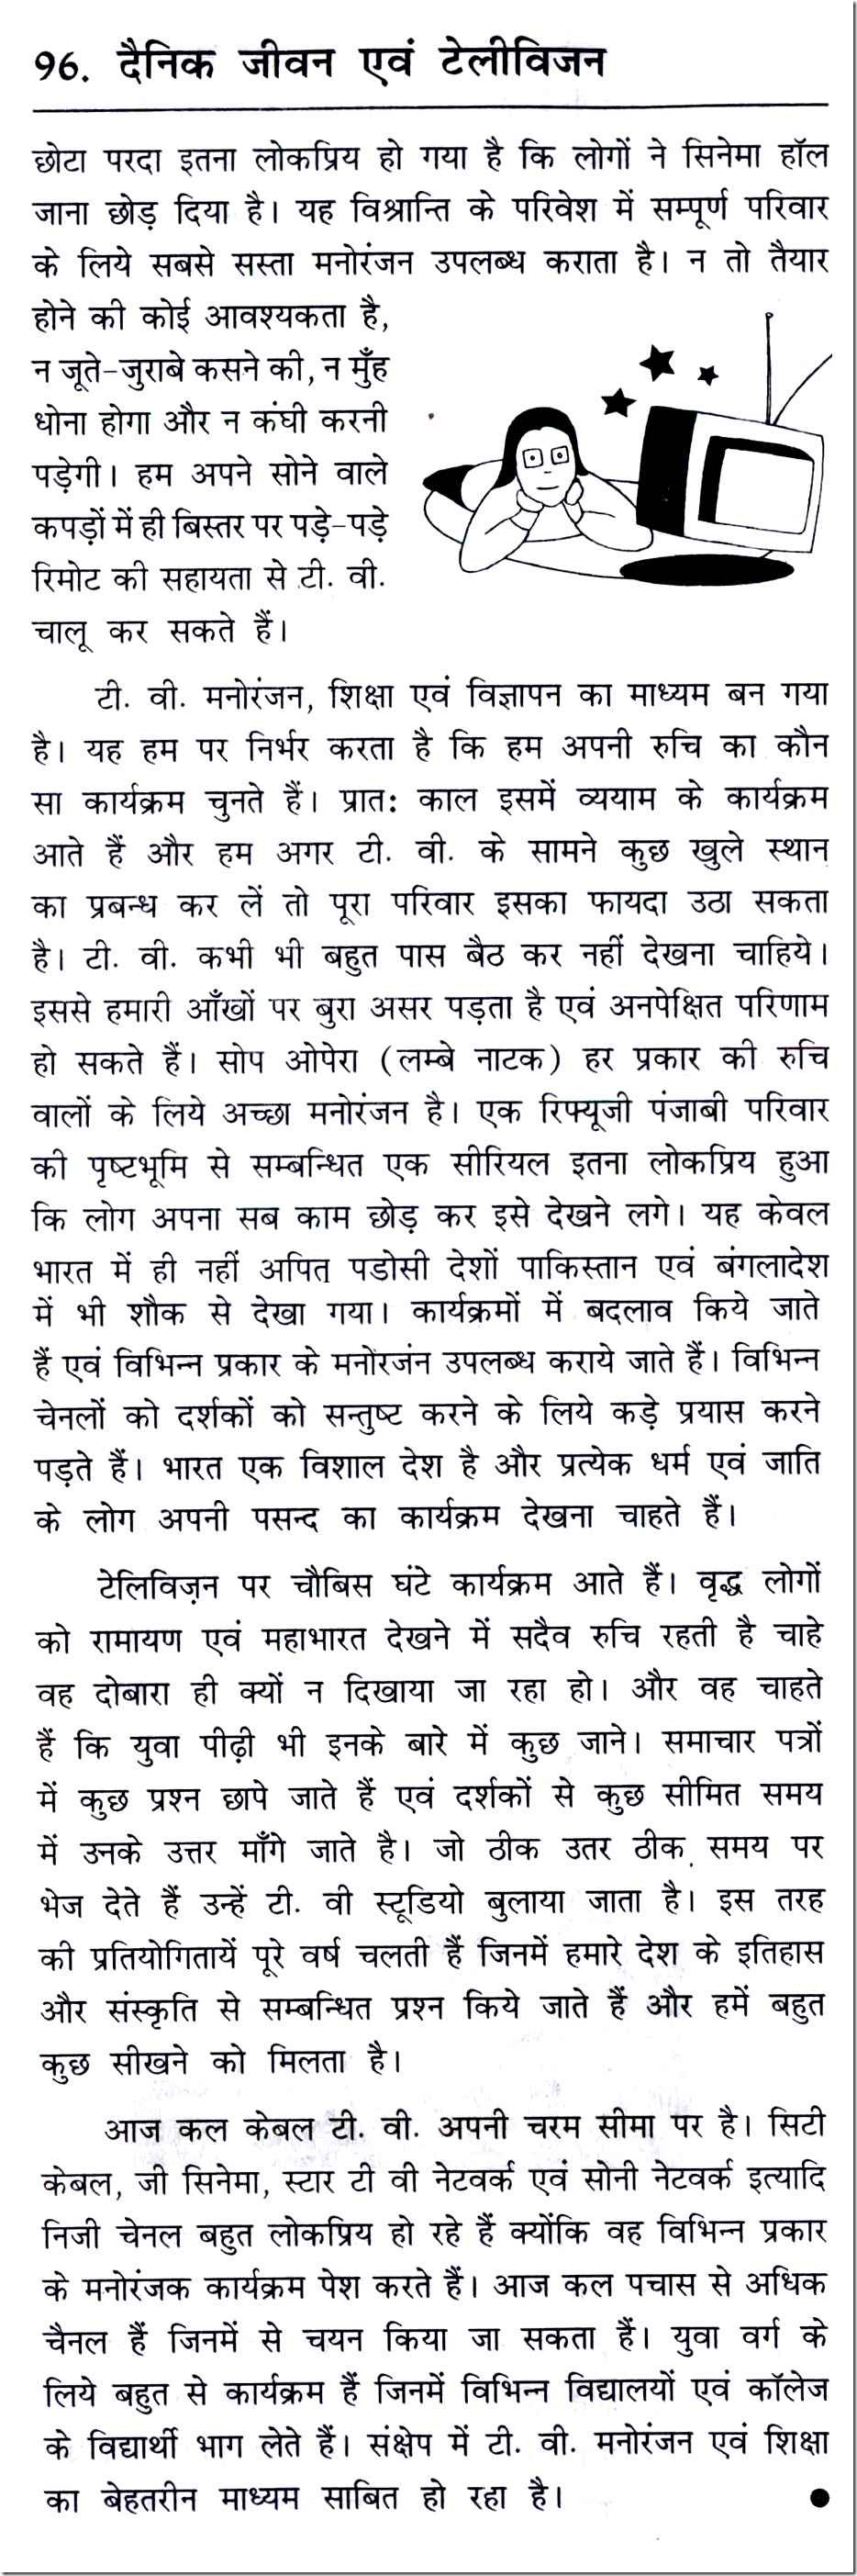 012 Essay Example 10098 Thumb Cleanliness In Sensational Hindi Is Godliness School Full